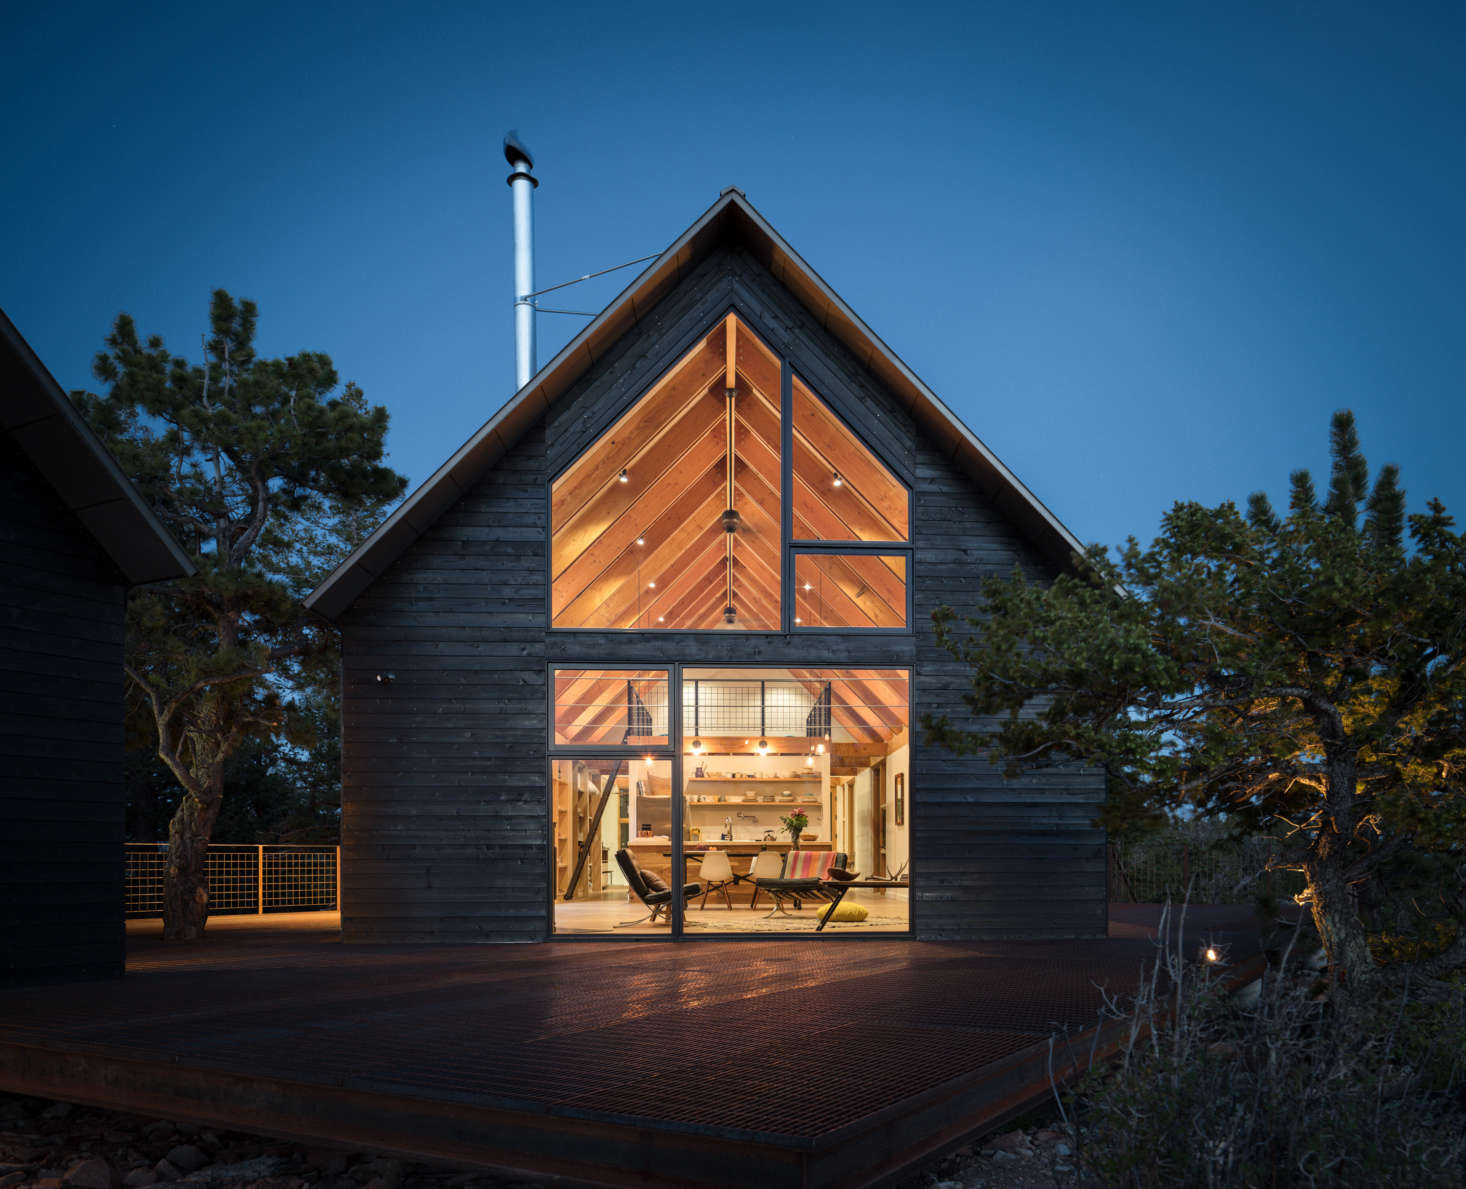 """""""Believe me, this is the first modern cabin in Fairplay,"""" says Blum. Initially, she looked into buying property in Breckenridge and Vail, but fell in love with the idea of being in a remote—and much more affordable—corner of Colorado."""